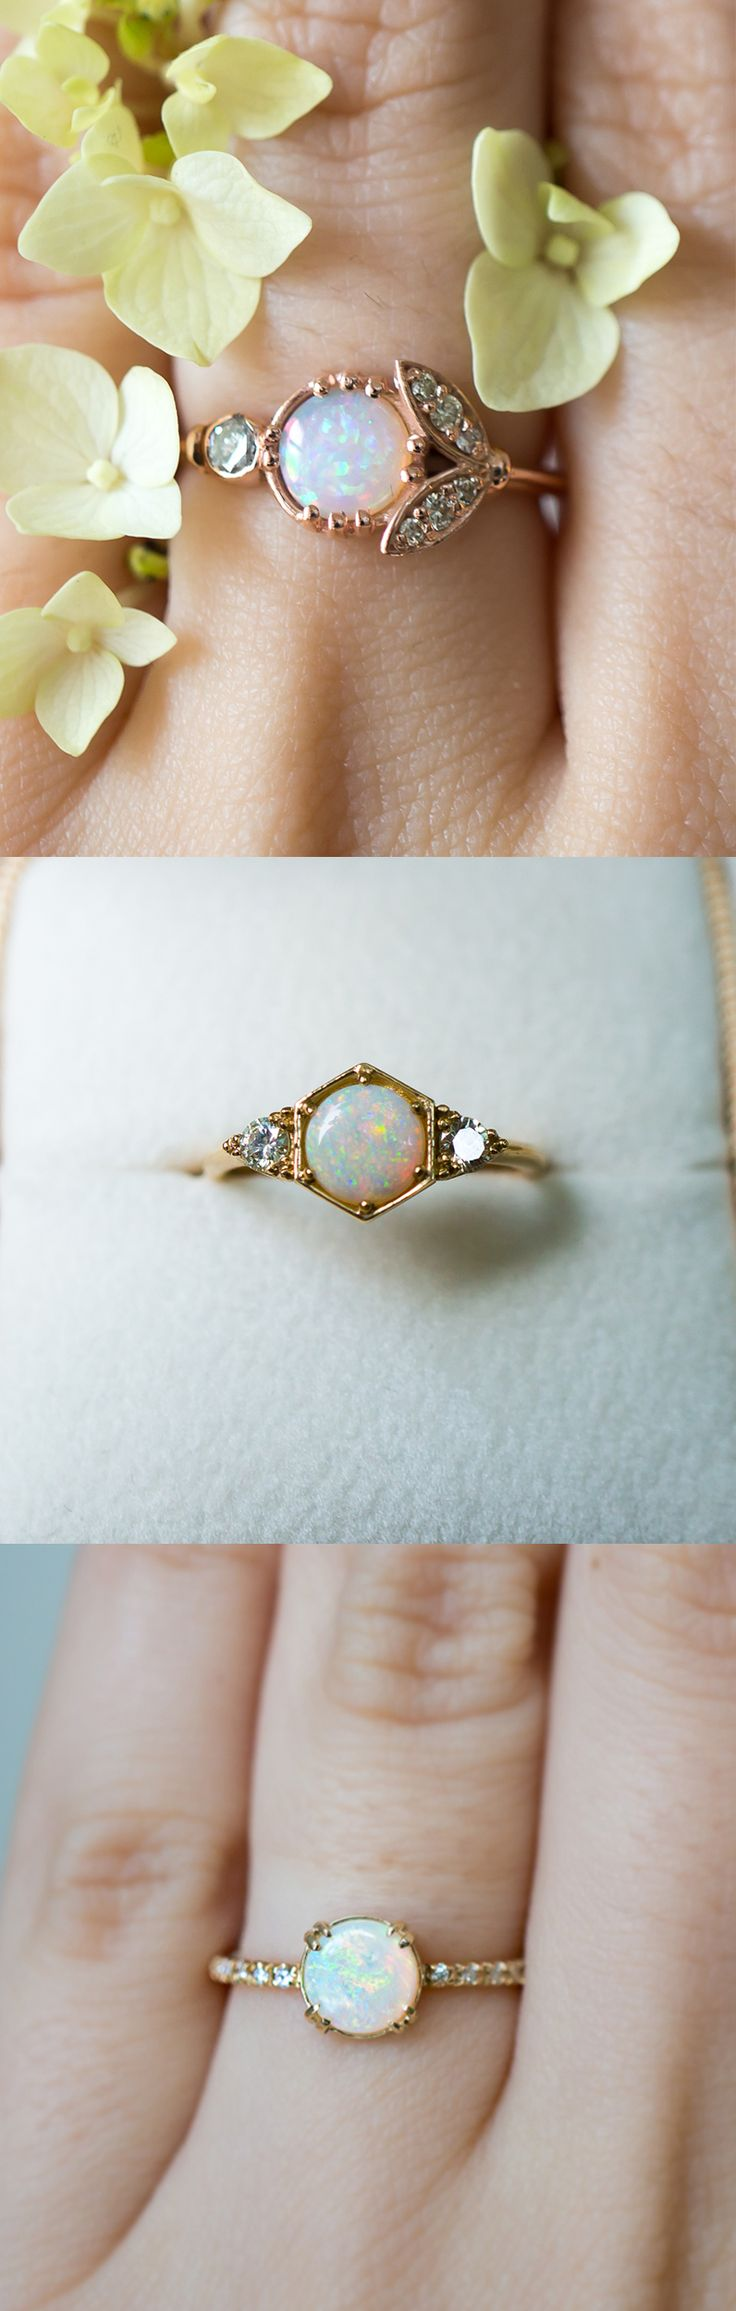 vintage opal rings vintage wedding ring sets Unique vintage inspired Opal engagement rings by S Kind Co